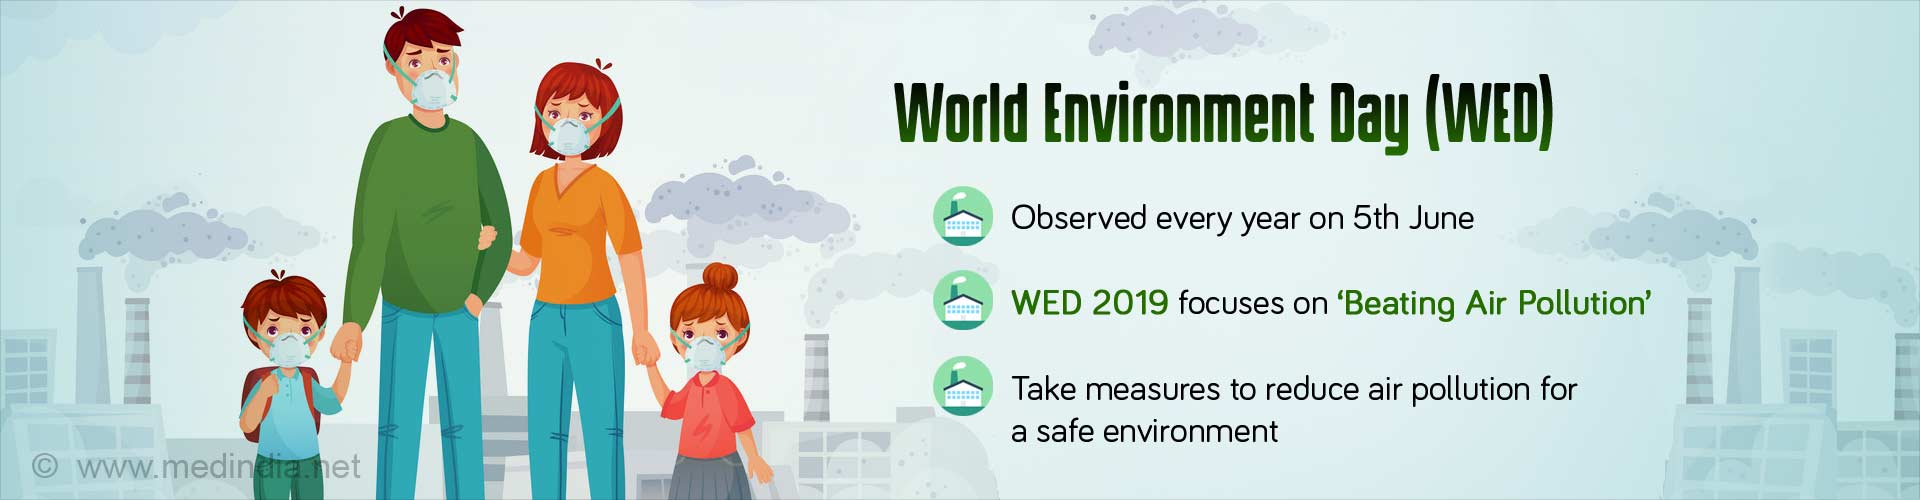 World Environment Day - Together, We Can Beat Air Pollution